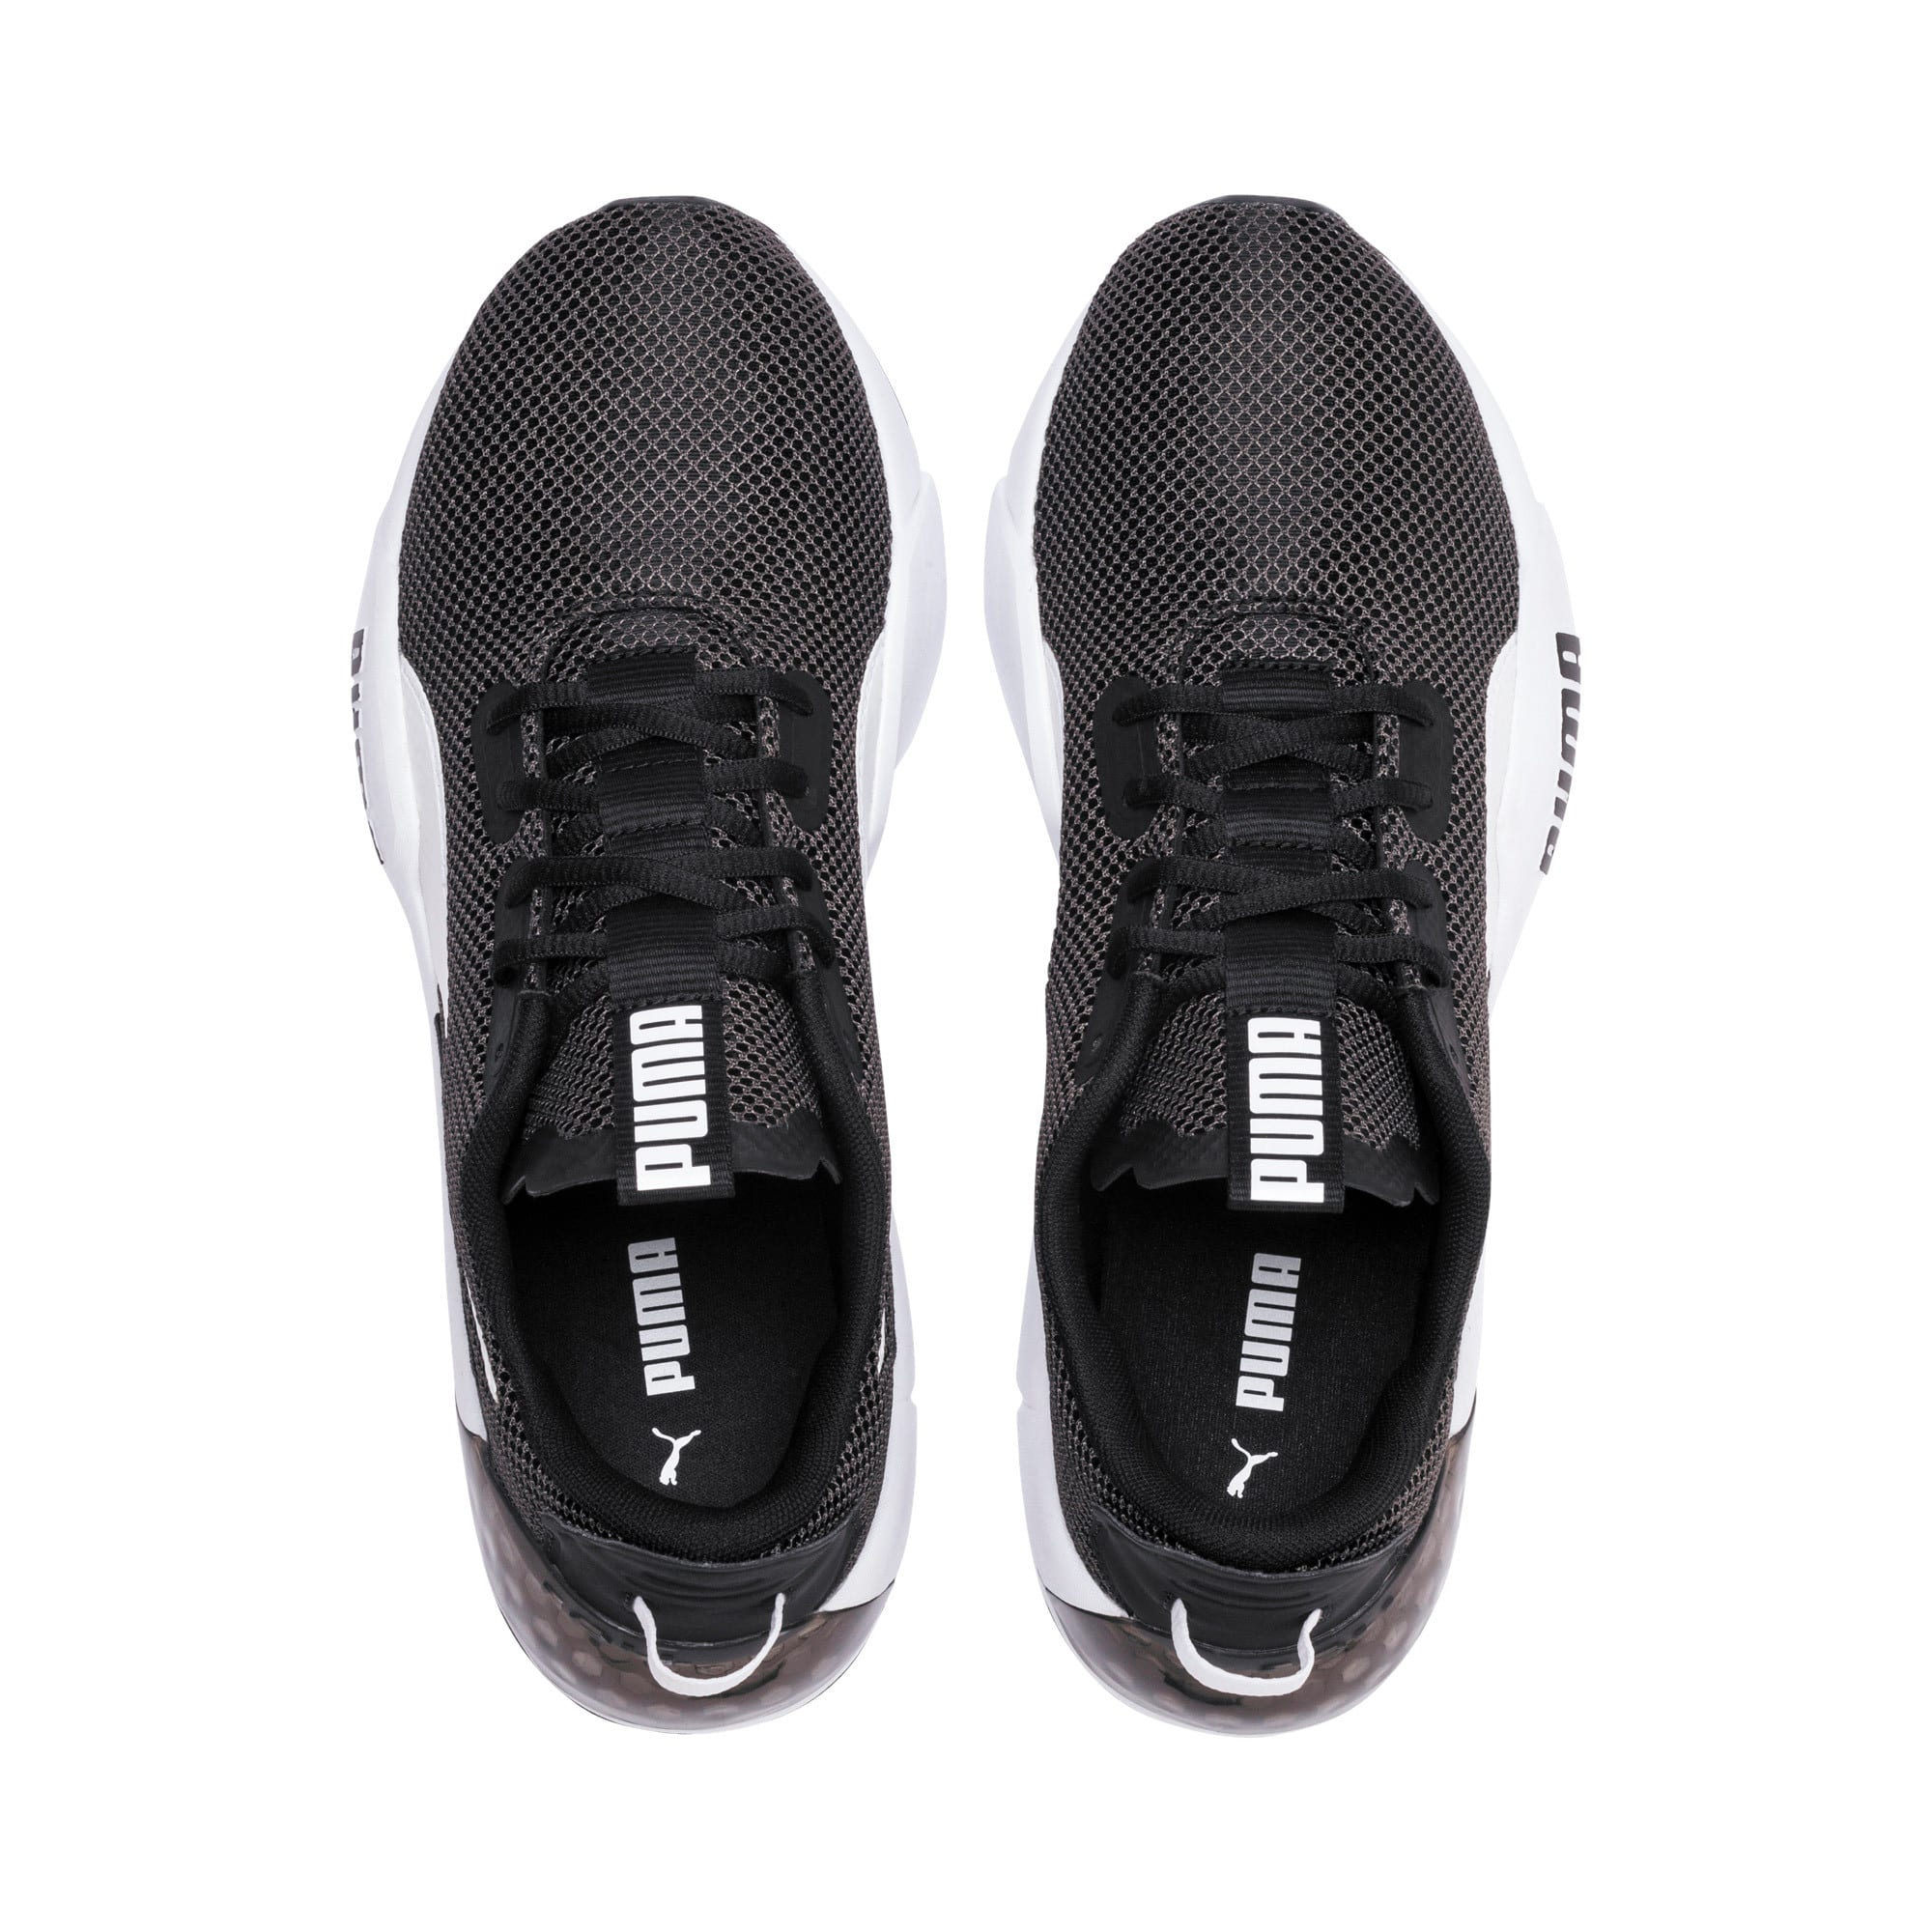 Thumbnail 7 of CELL Phase Herren Running Sneaker, Puma Black-Puma White, medium